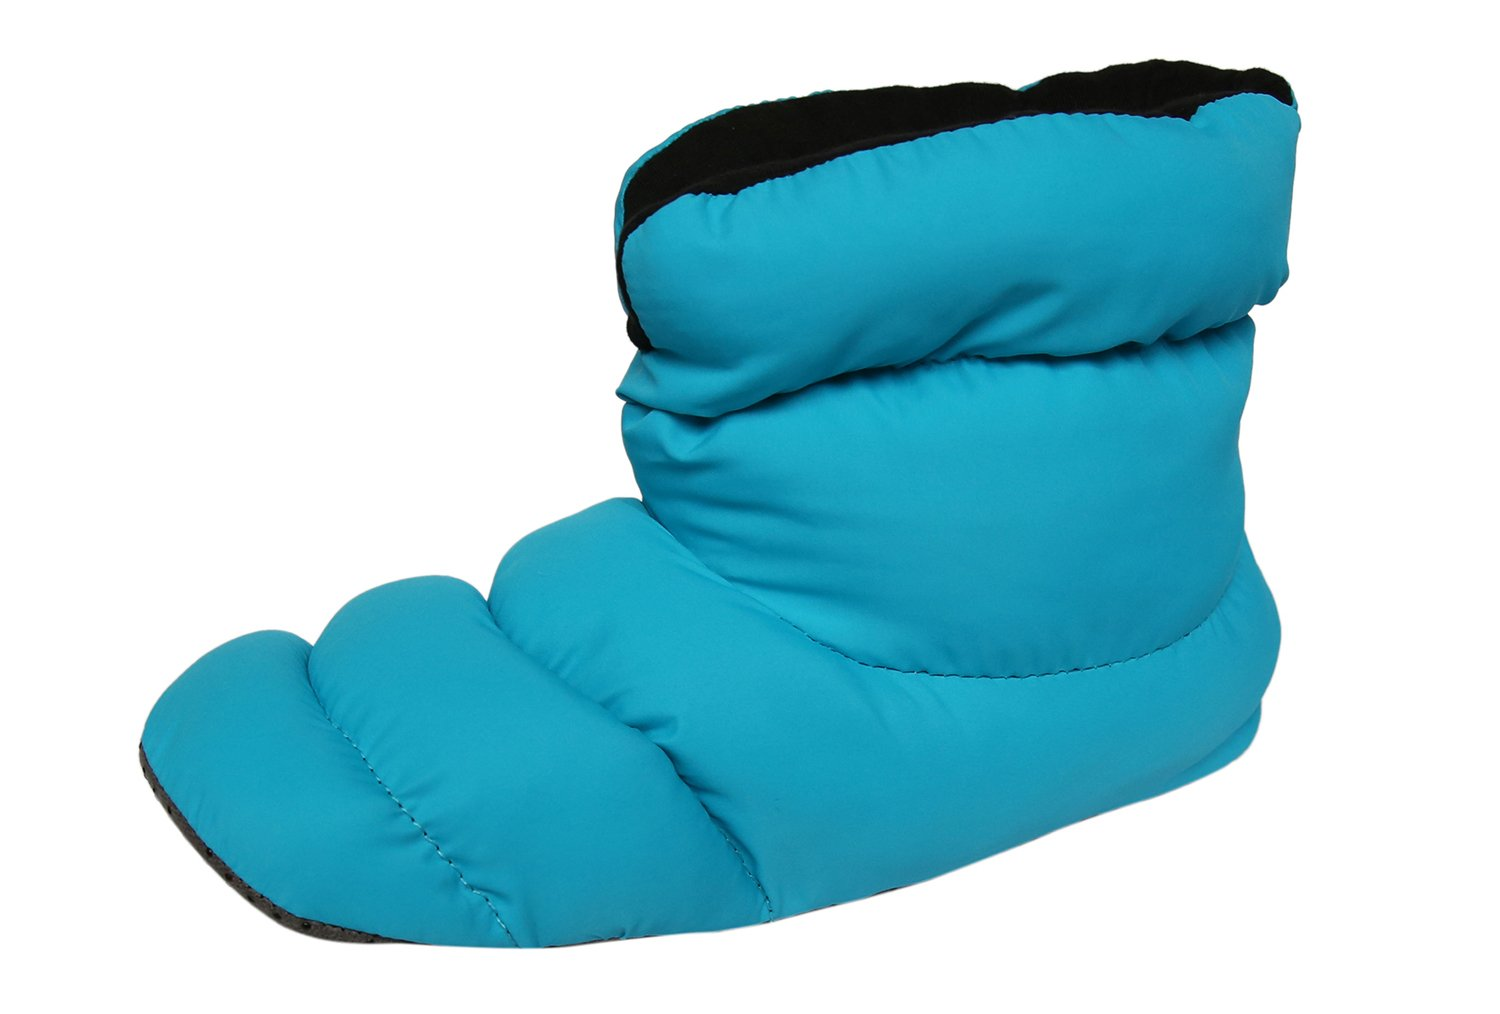 SLPR Unisex Warm Cozy Indoor Mid Bootie Slippers With Non-Slip Sole (Blue/Black, Large)   Perfect For House Bedroom Dorm Camping